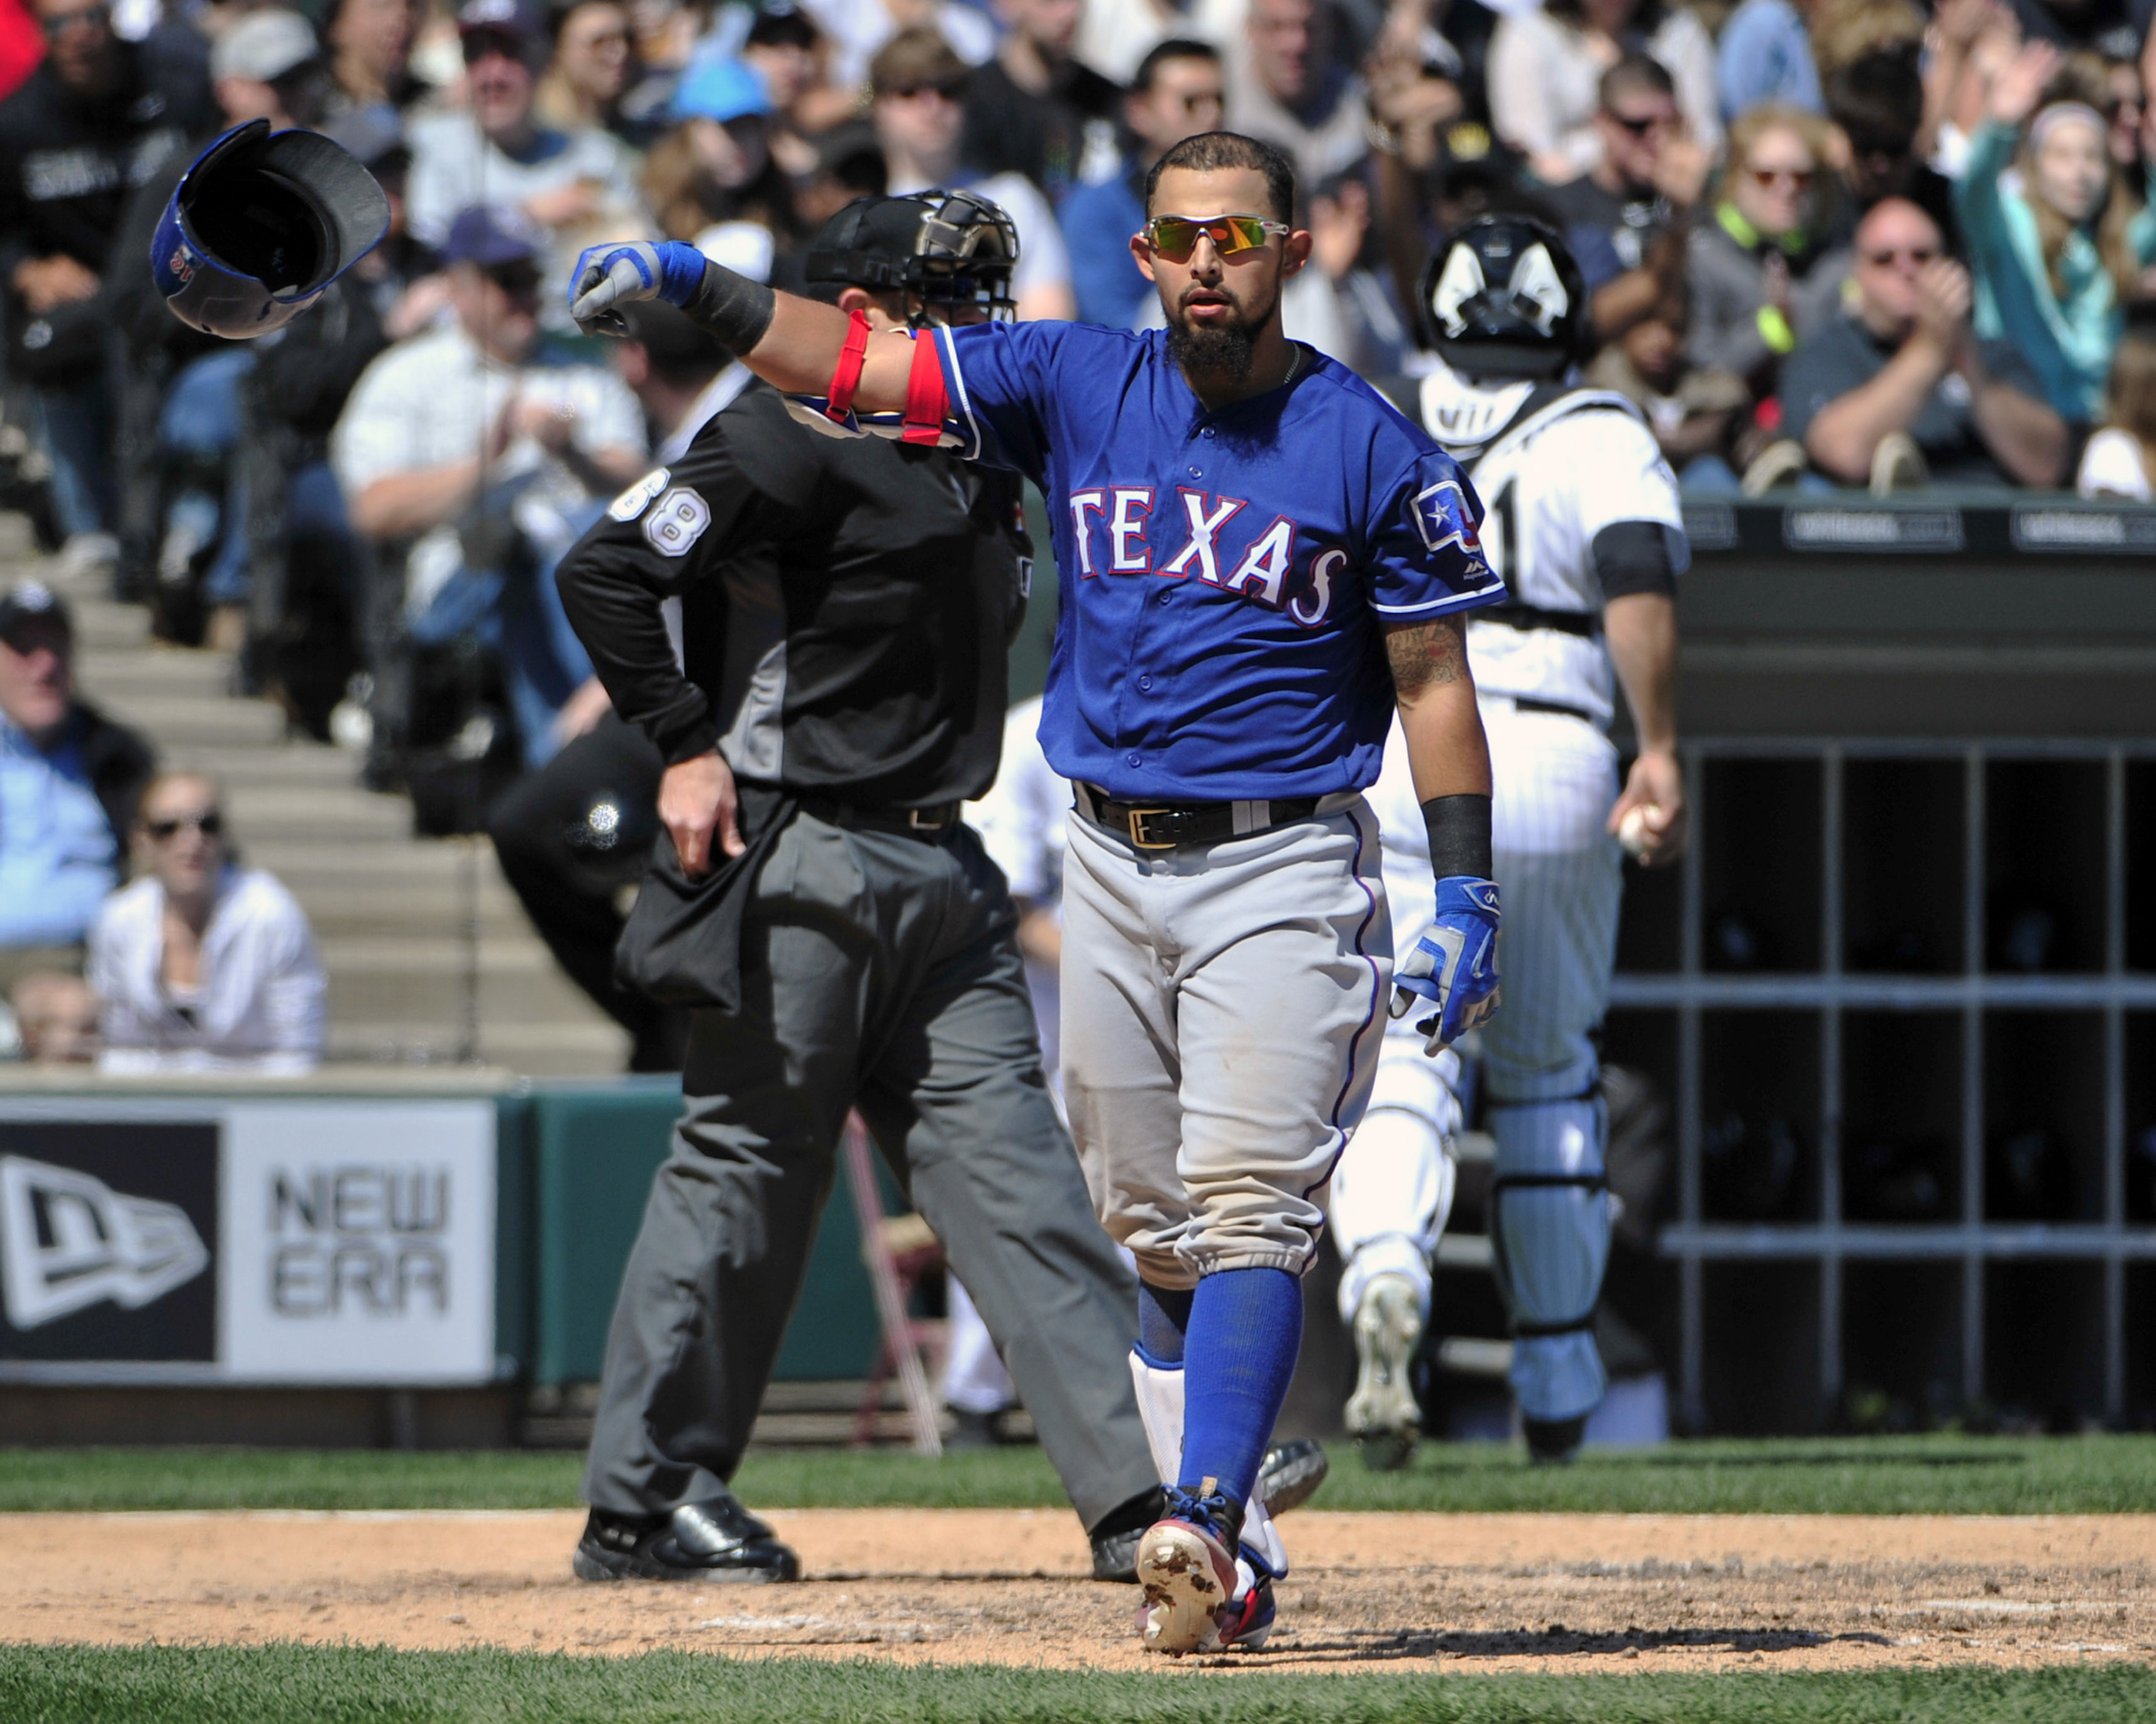 Texas Rangers' Rougned Odor (12) reacts after striking out against the Chicago White Sox during the fifth inning of a baseball game, Saturday, April 23, 2016, in Chicago. (AP Photo/David Banks)